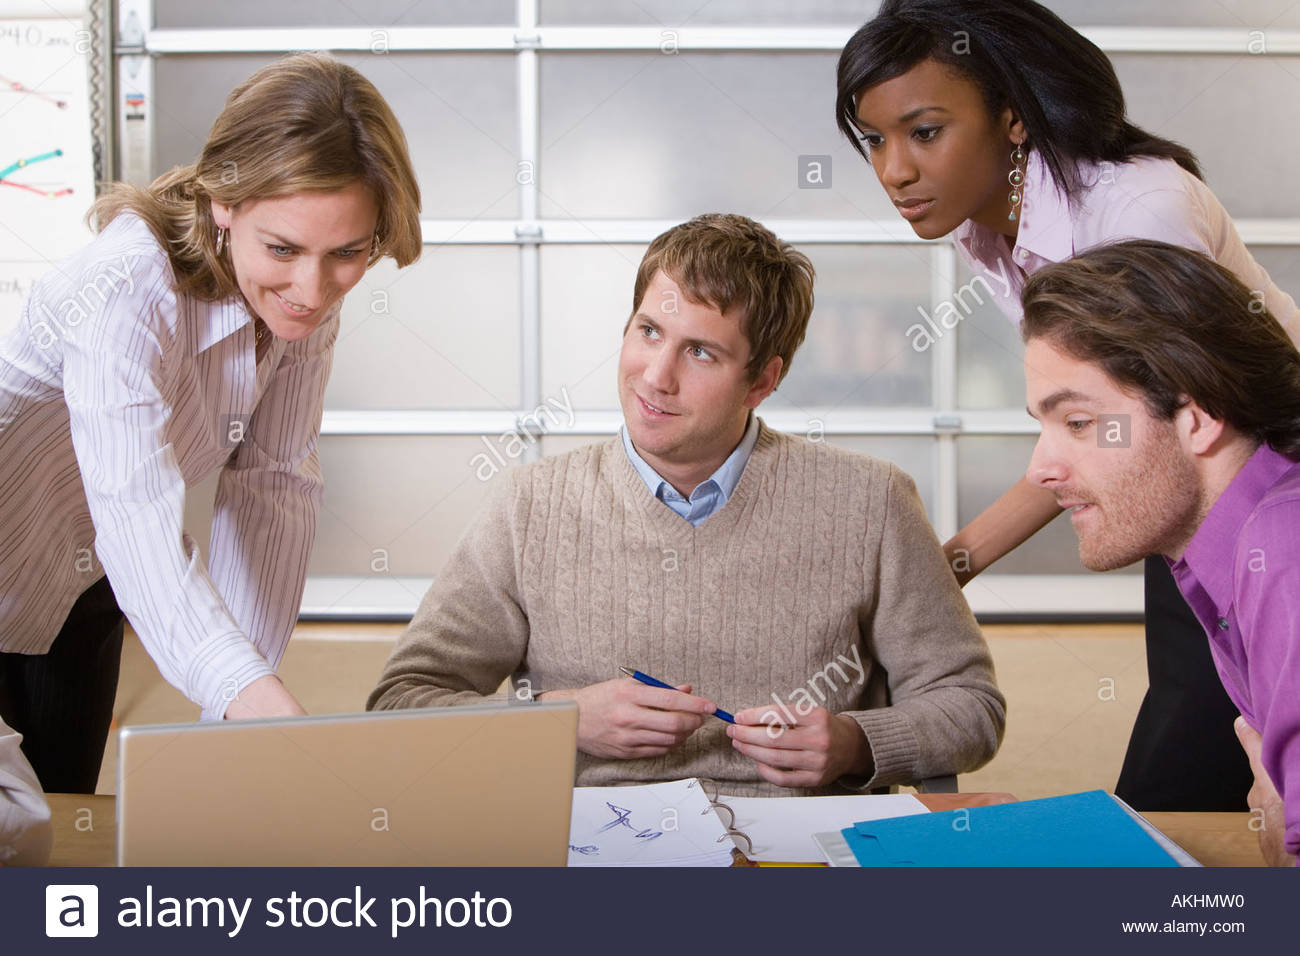 Colleagues working on project - Stock Image